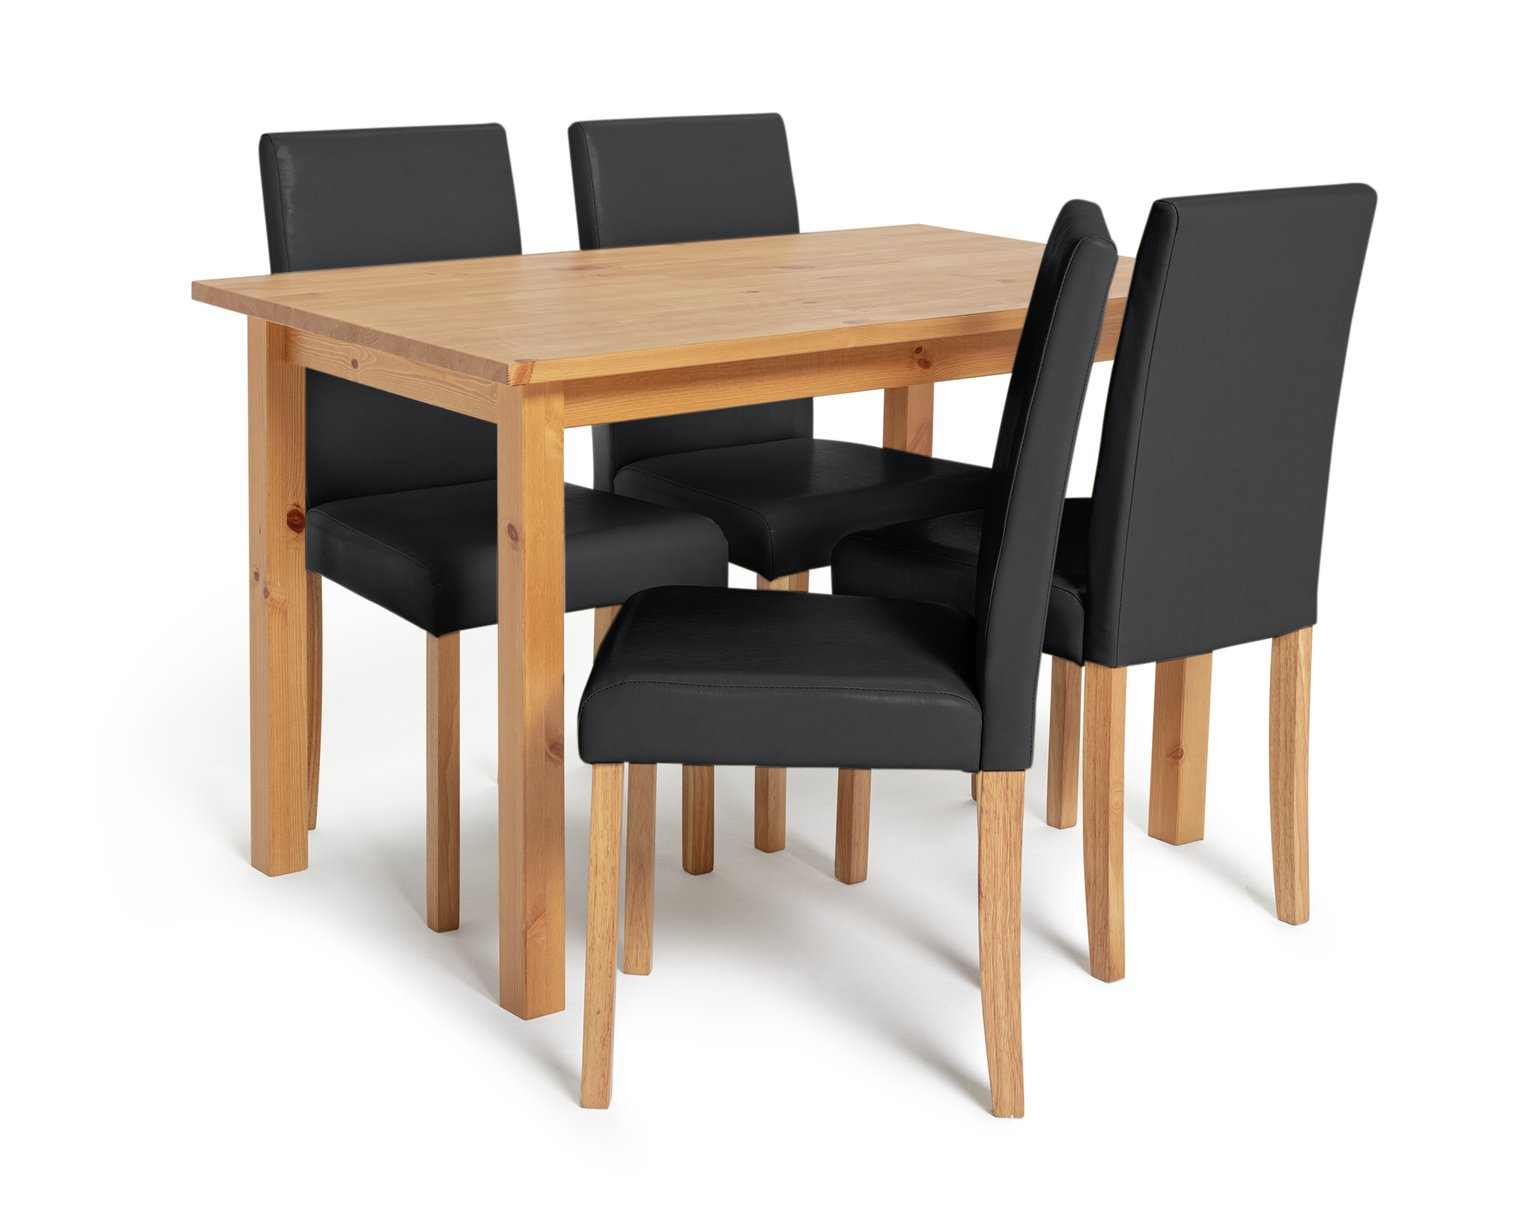 Argos Home Ashdon Solid Wood Dining Table & 4 Black Chairs